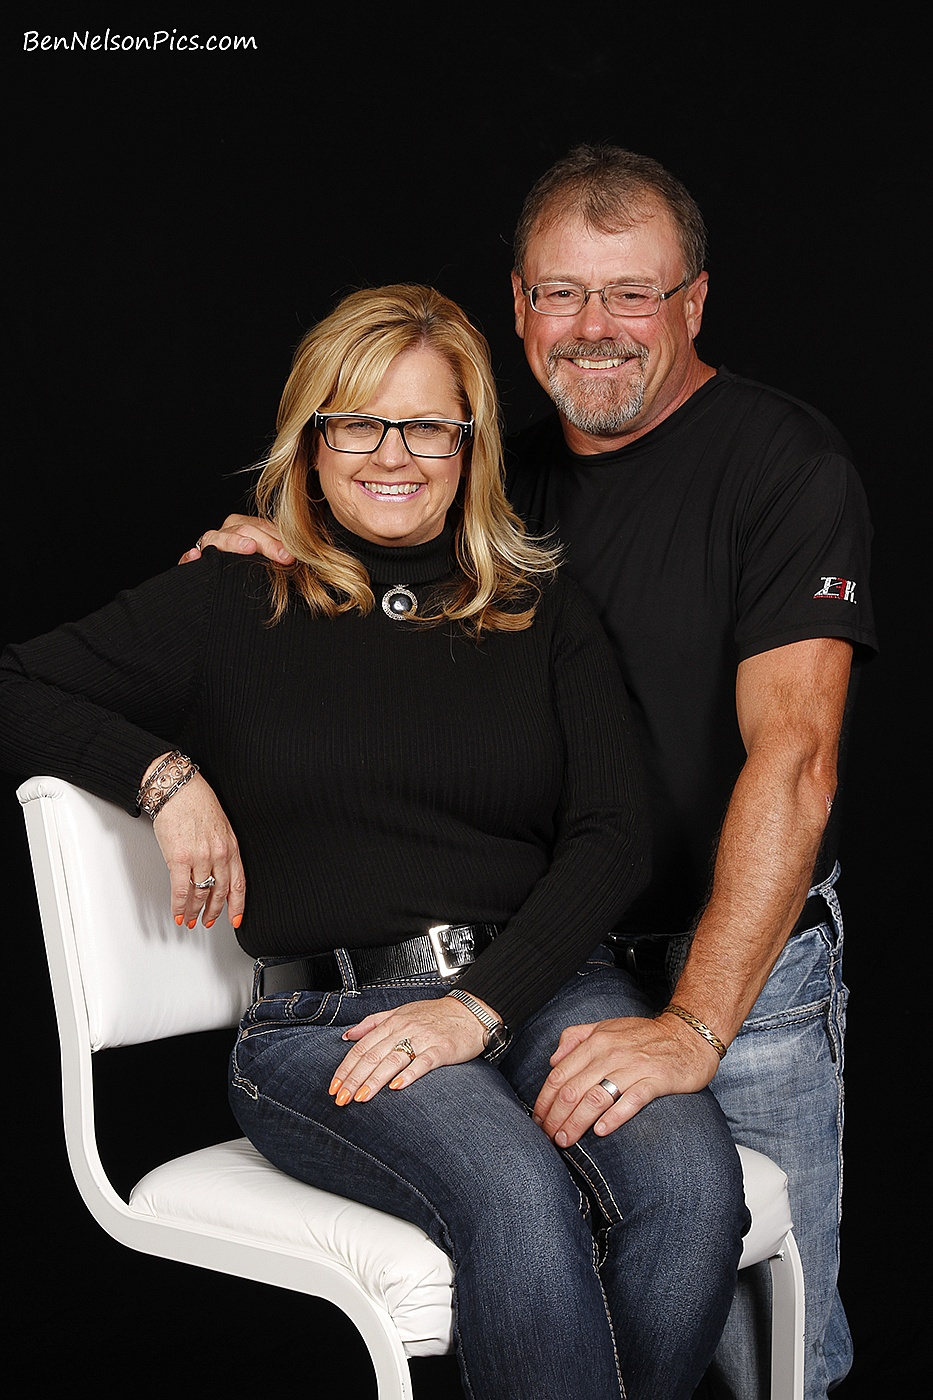 Couples Photos and Engagement Pictures in Springfield Missouri - Studio Picture Of A Married Couple